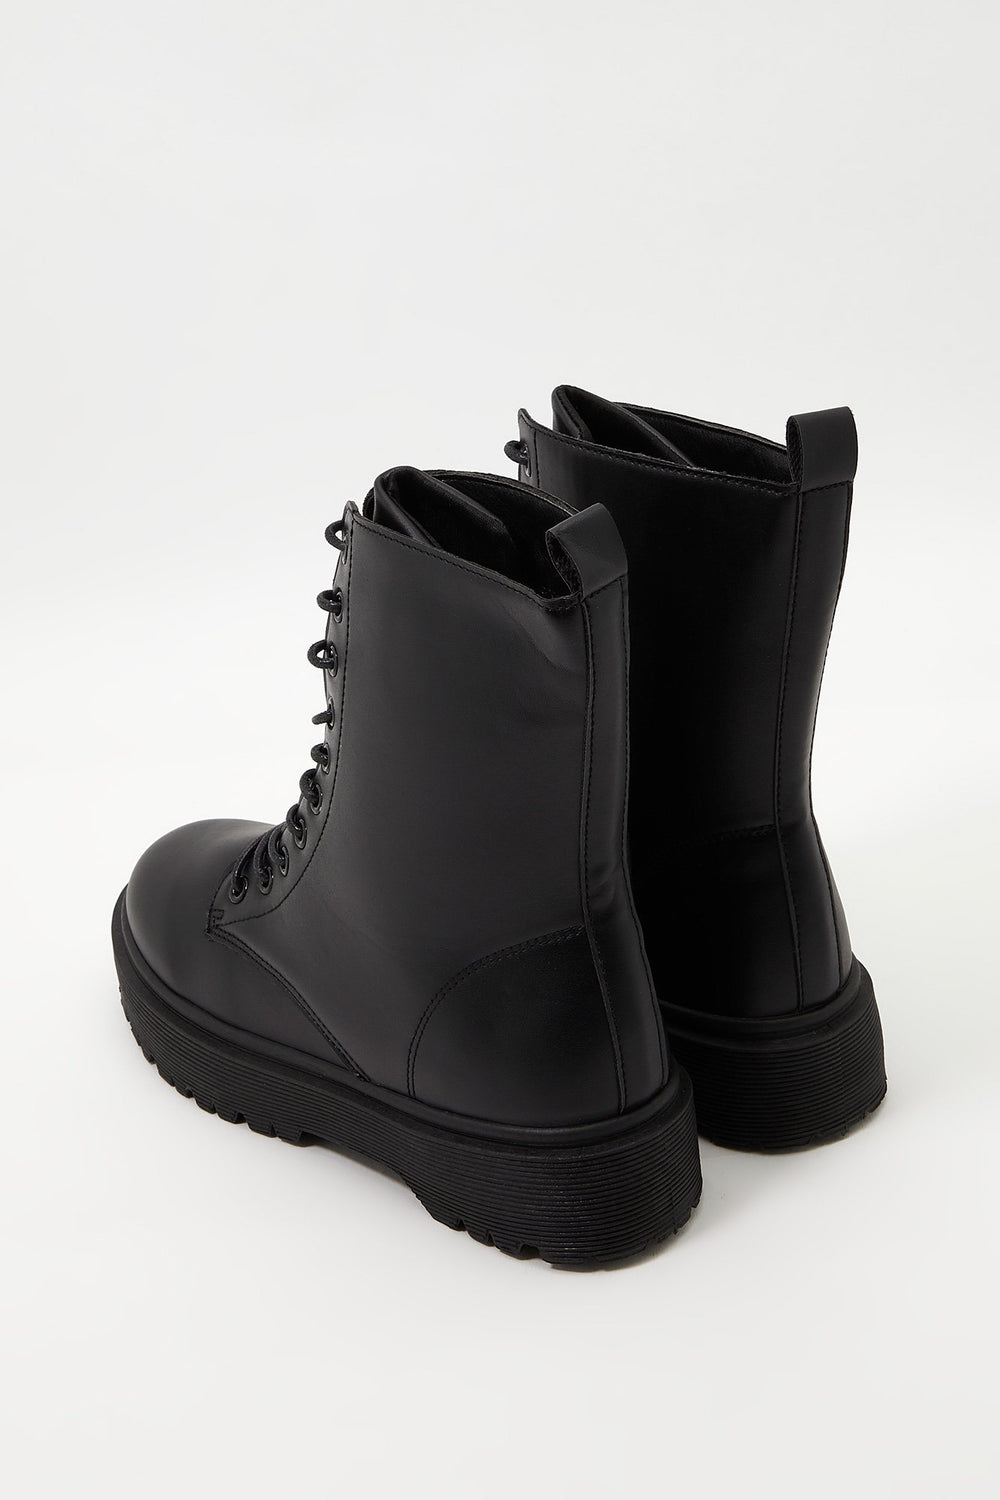 Classic Faux-Leather Combat Boot Black